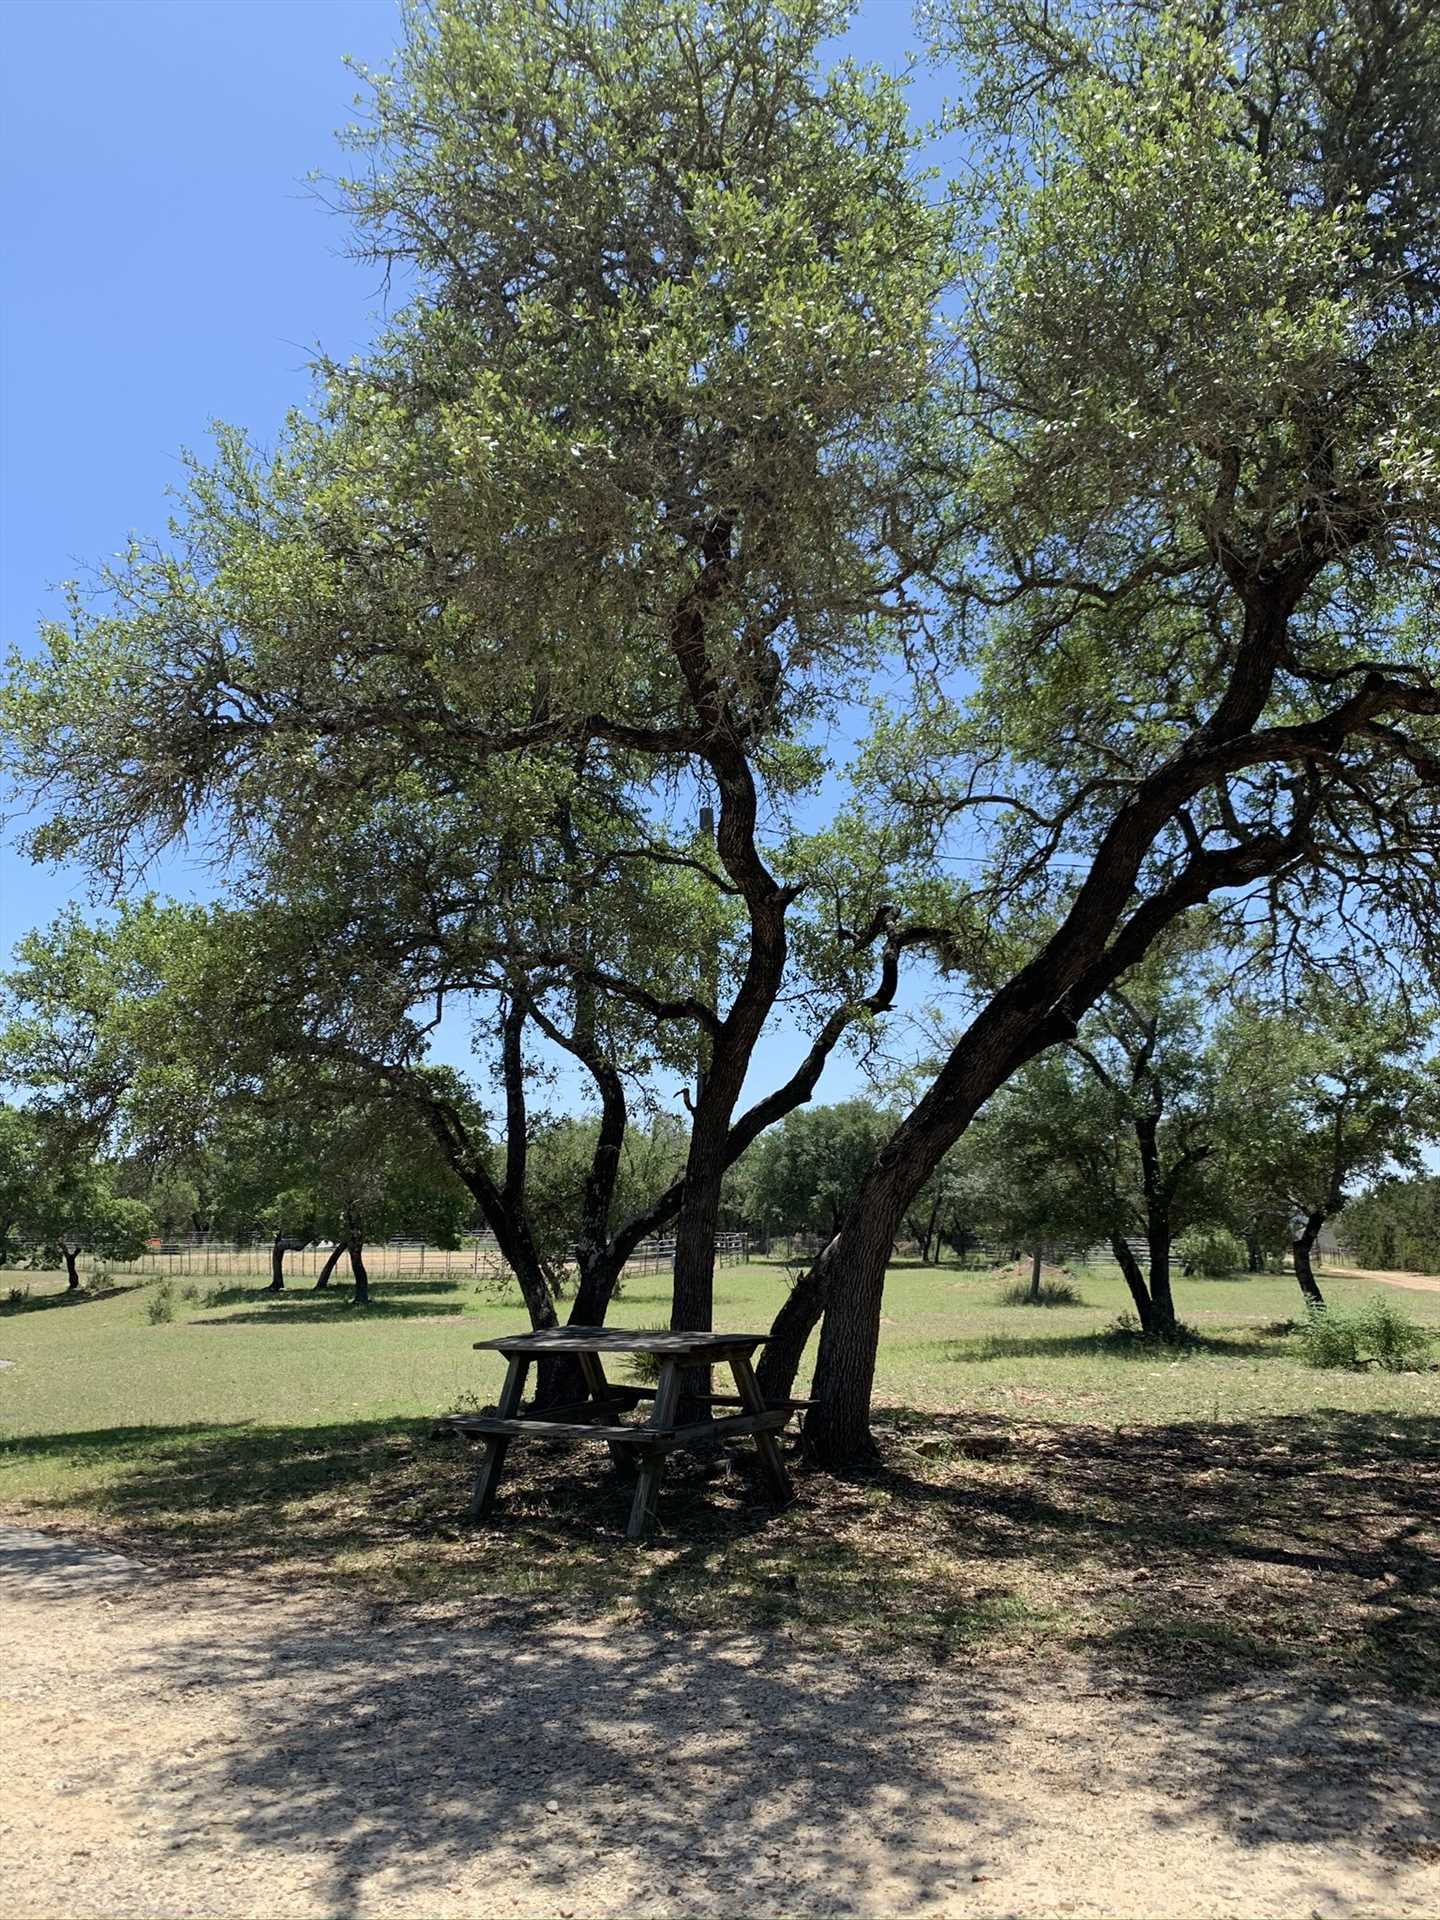 Imagine a country picnic in the shade, with soft Hill Country breezes and twittering birds as your background music!